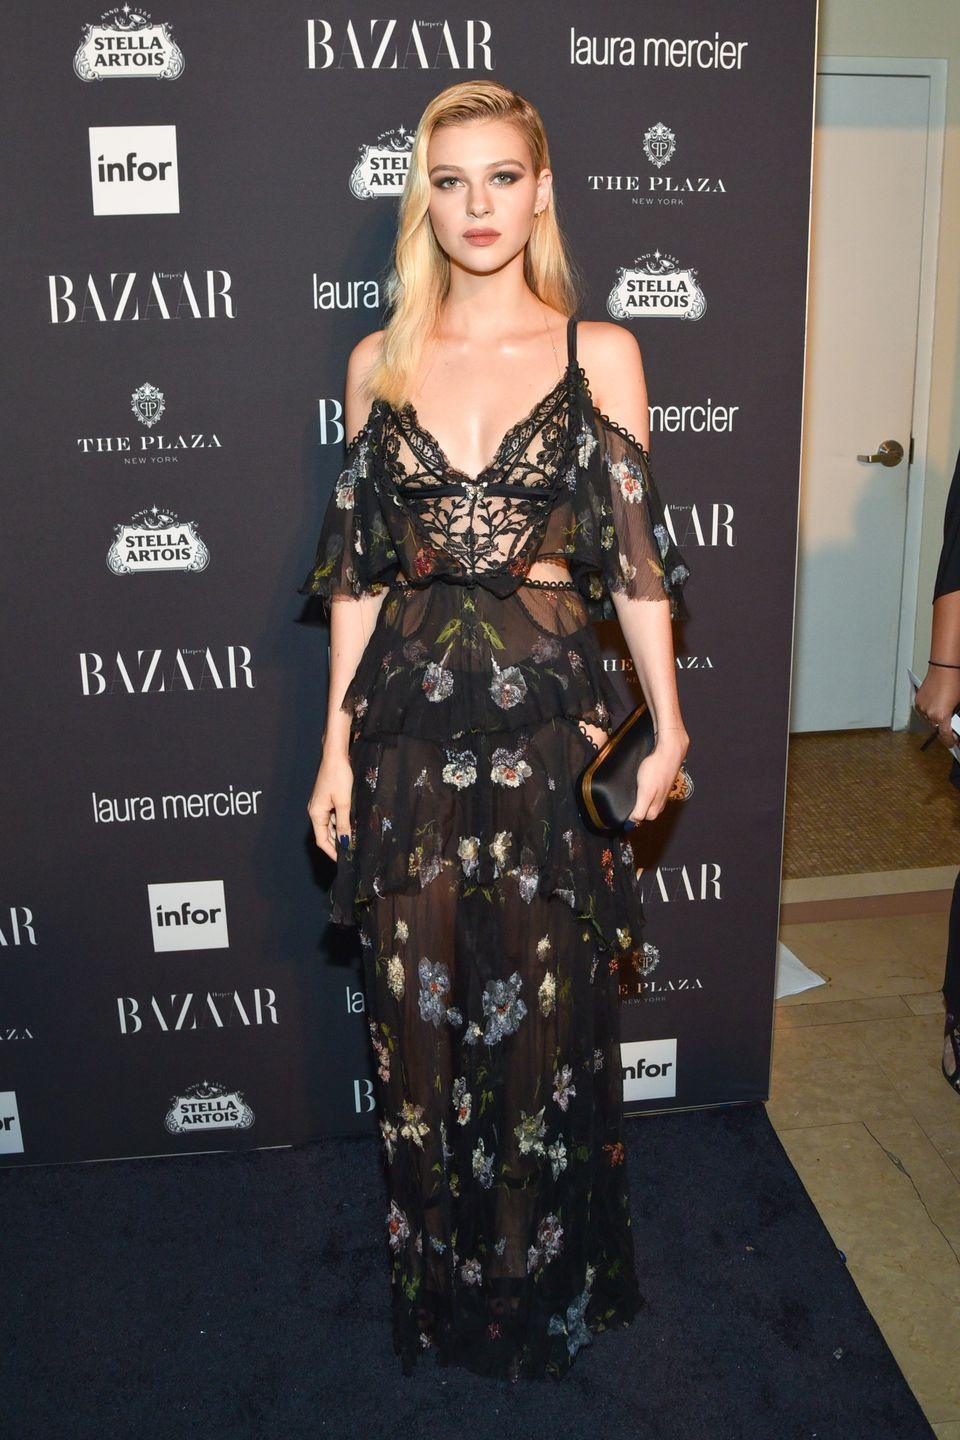 <p>The star wore an off-the-shoulder, black floral-printed floor-length dress to the star-studded event. She styled the look with a black satin clutch bag. </p>